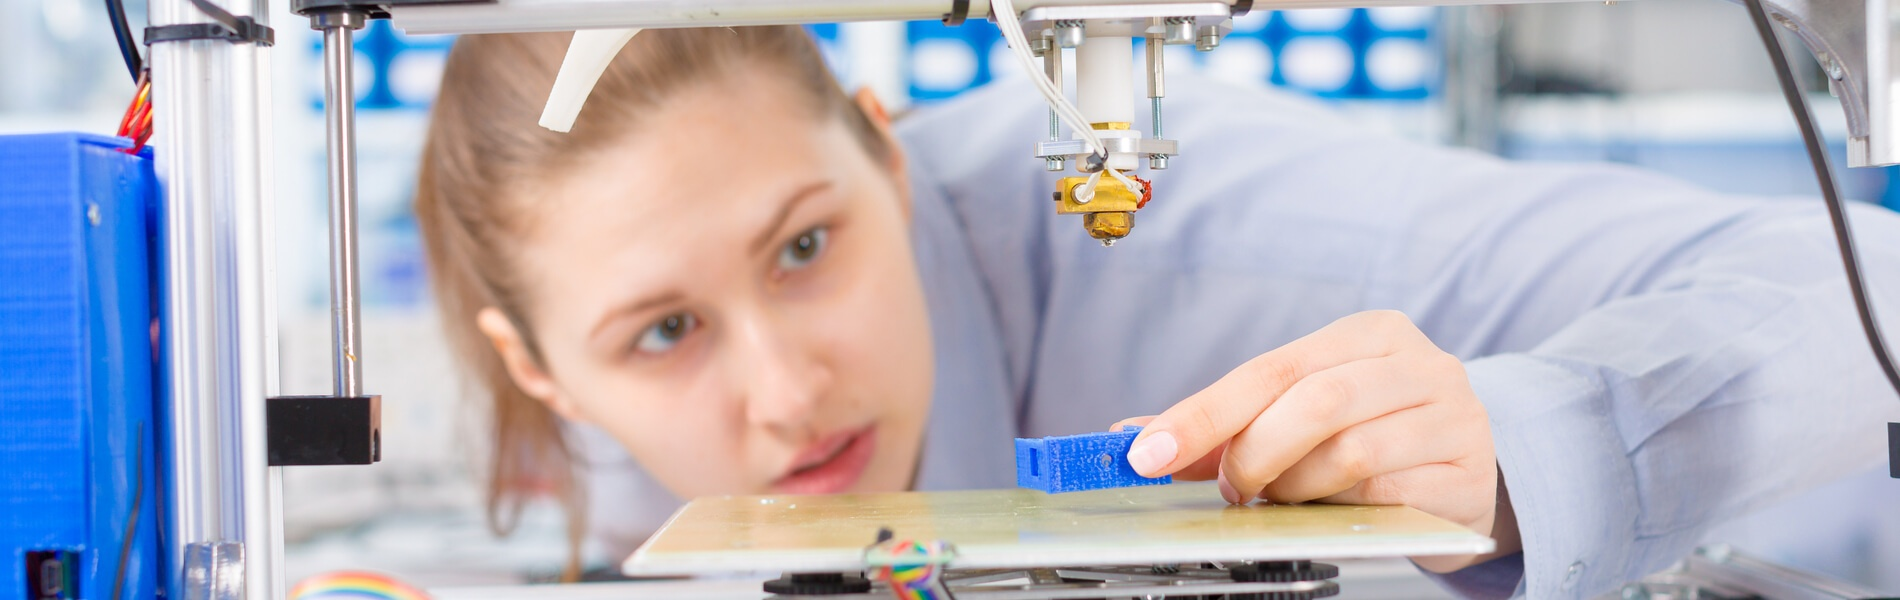 engineering-placements-manufacturing-skills-gap-banner.jpg